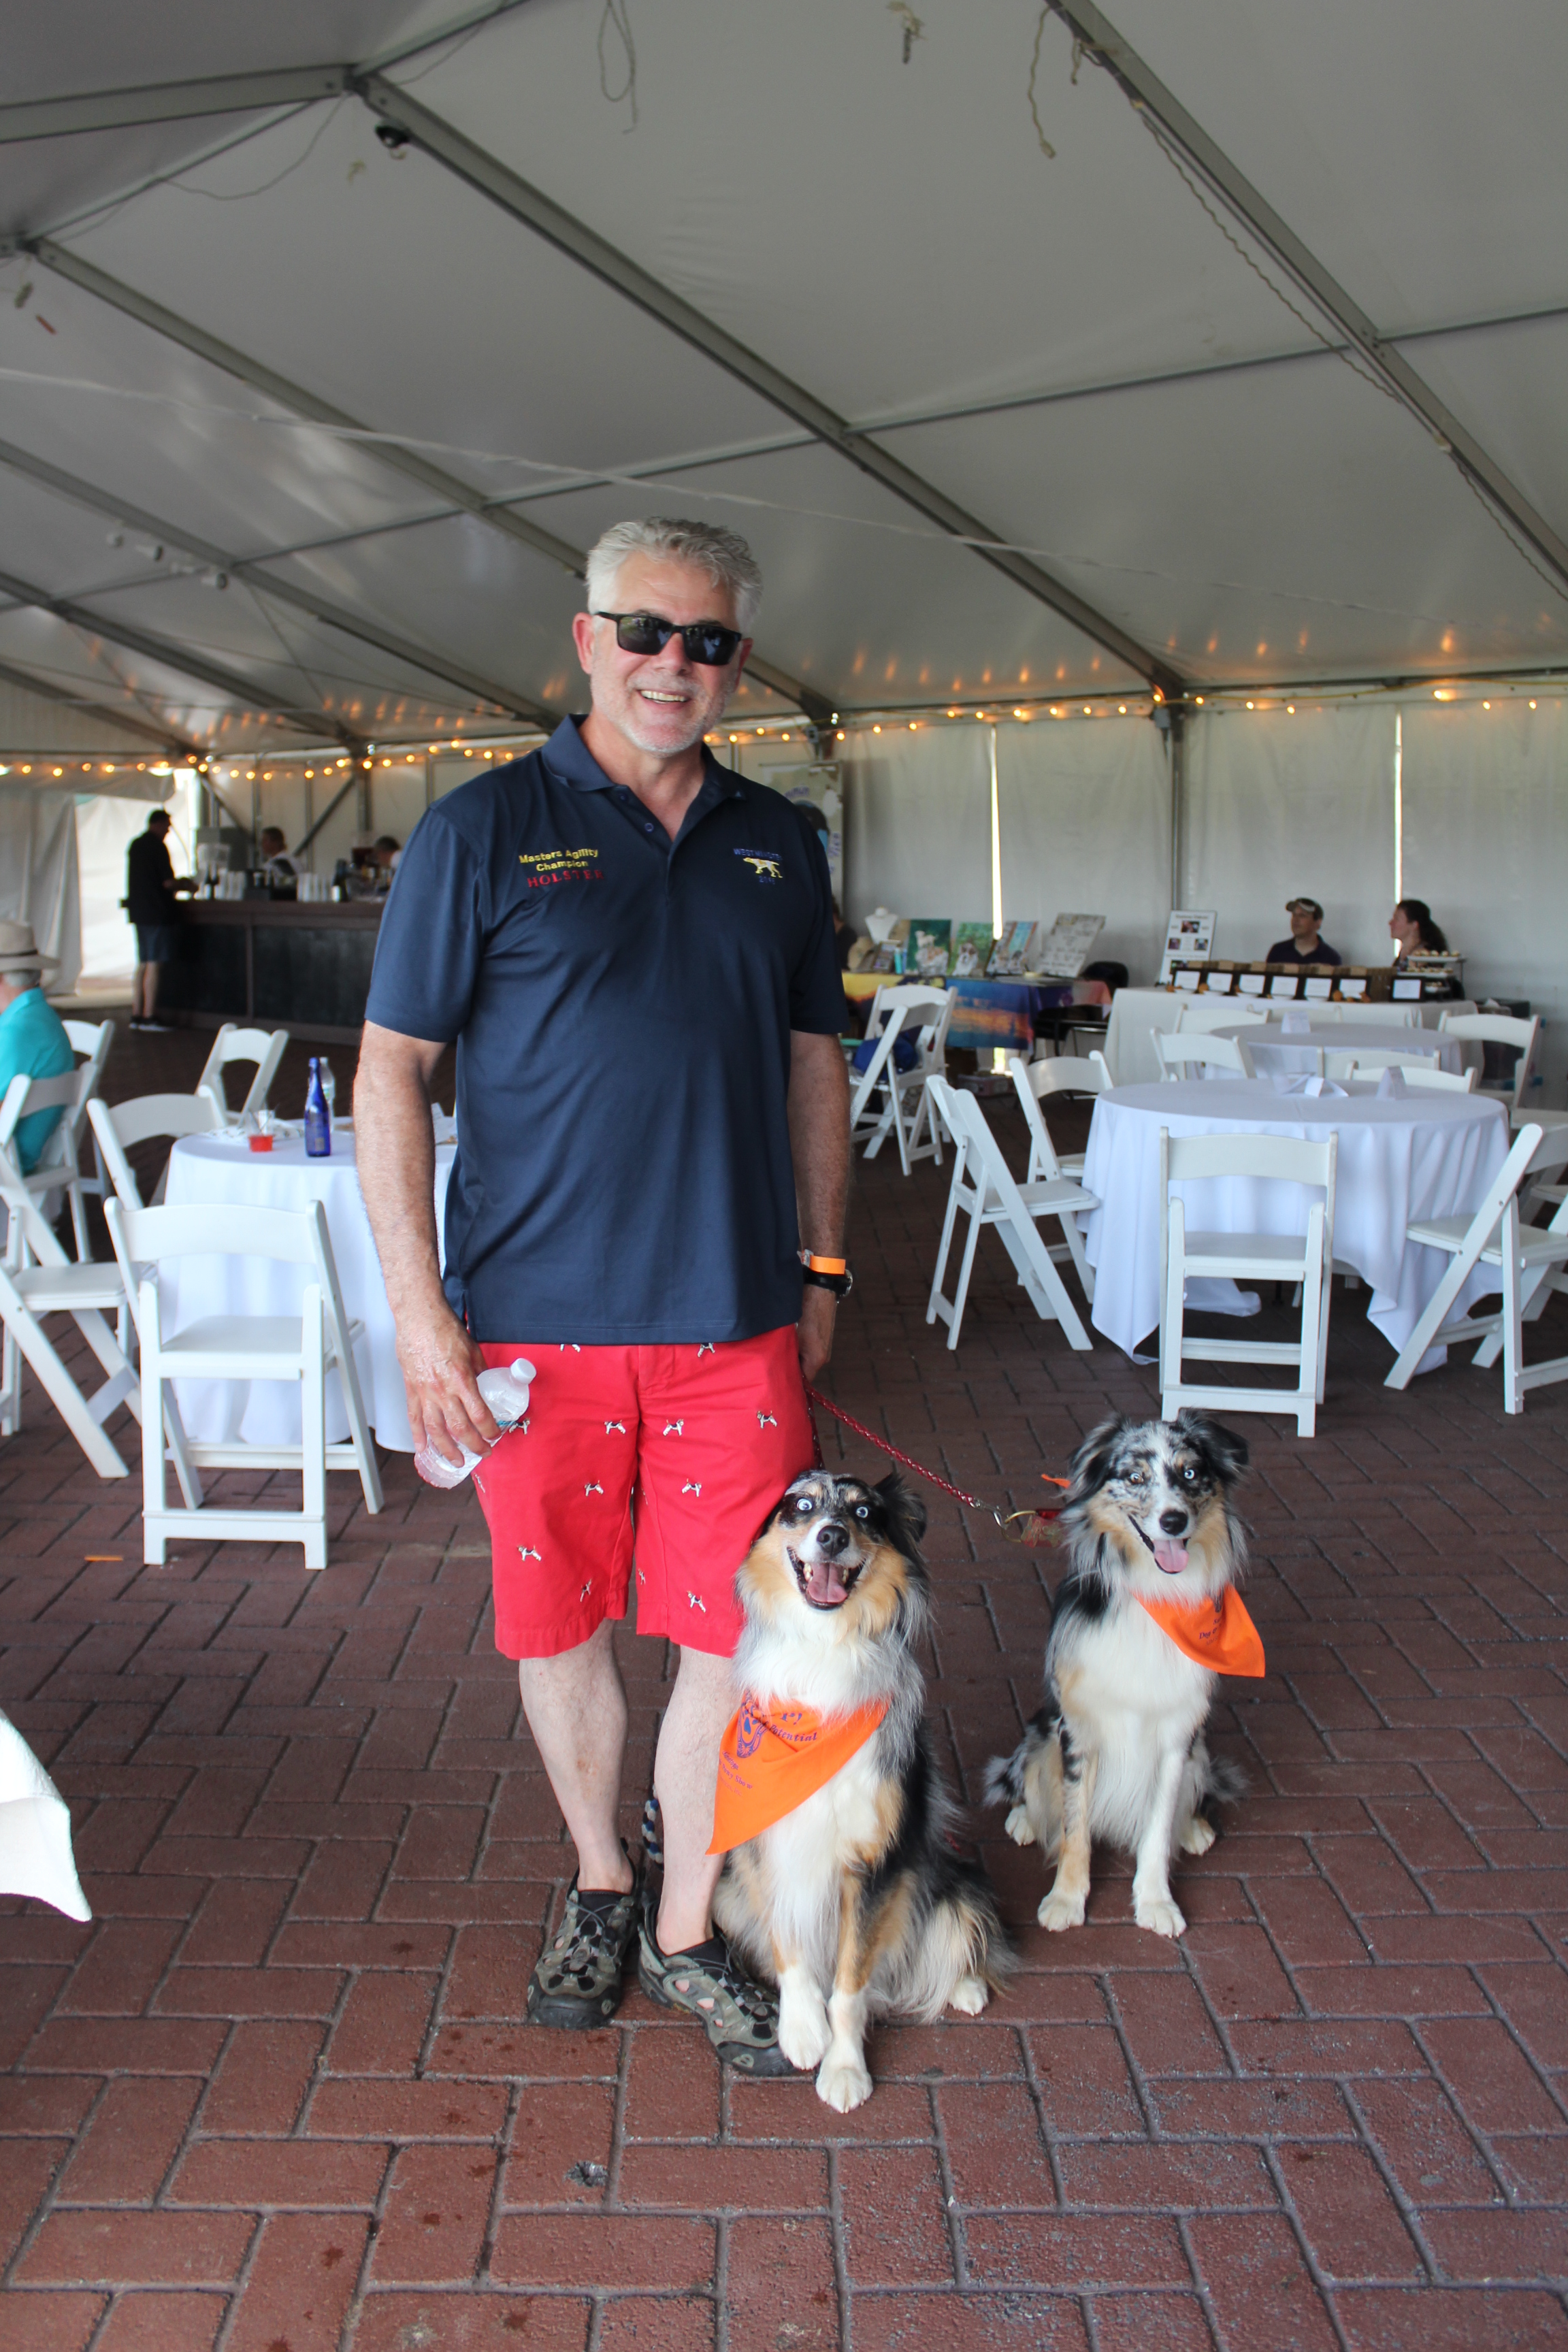 Man smiling with two dogs at the Saratoga Dog & Pony Show to benefit AIM Services, Inc.